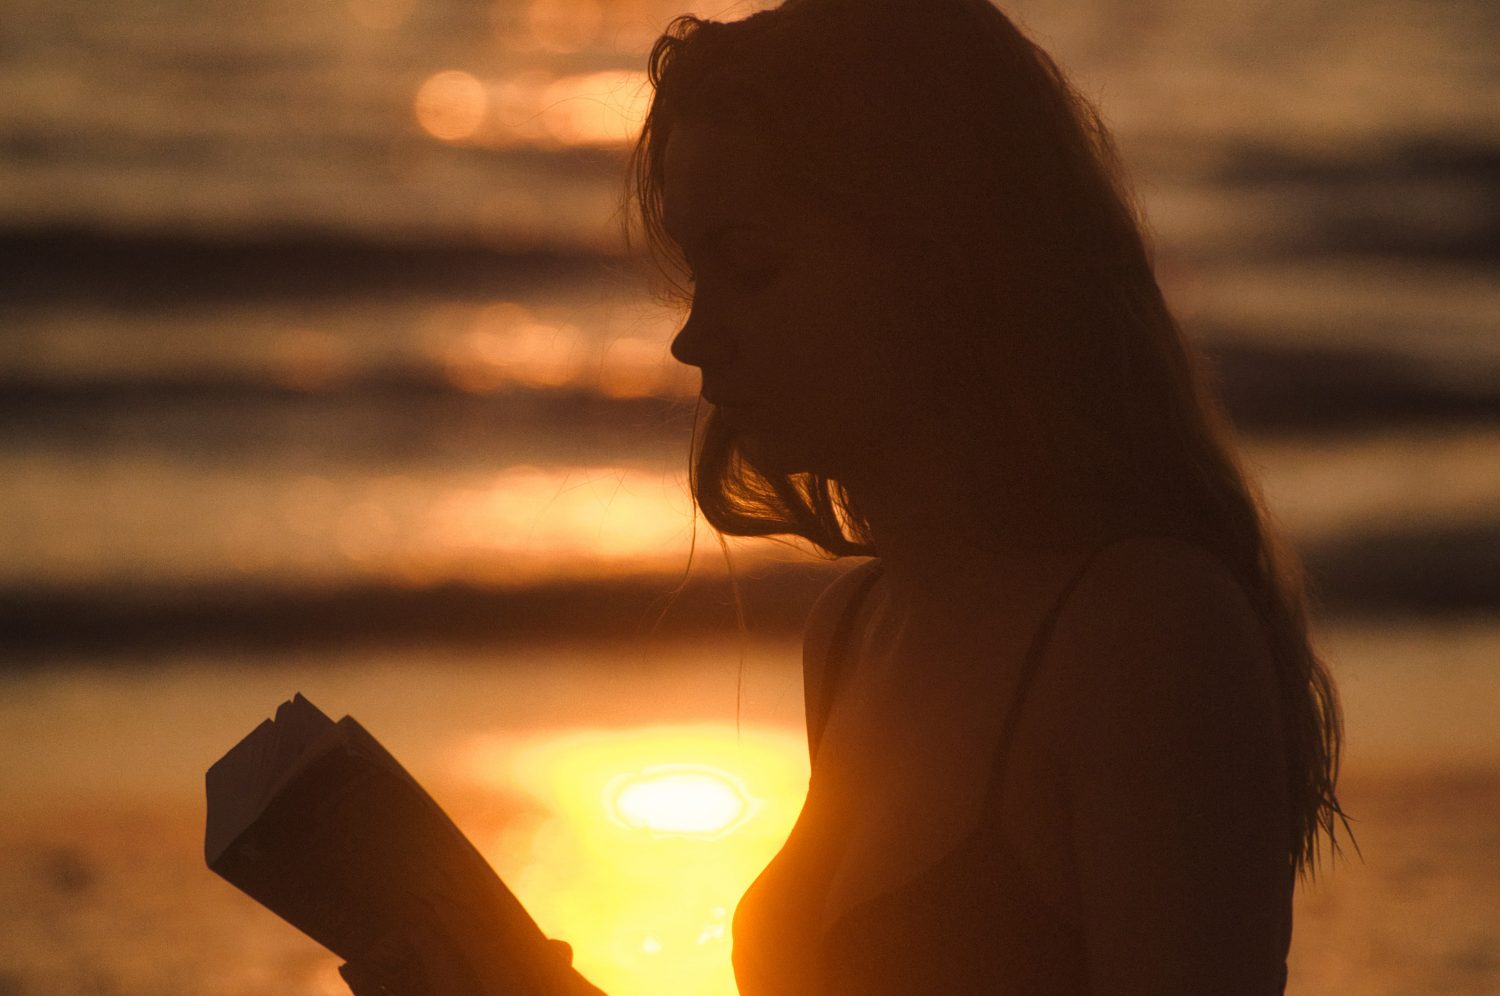 Young woman reading a book while the sun is setting